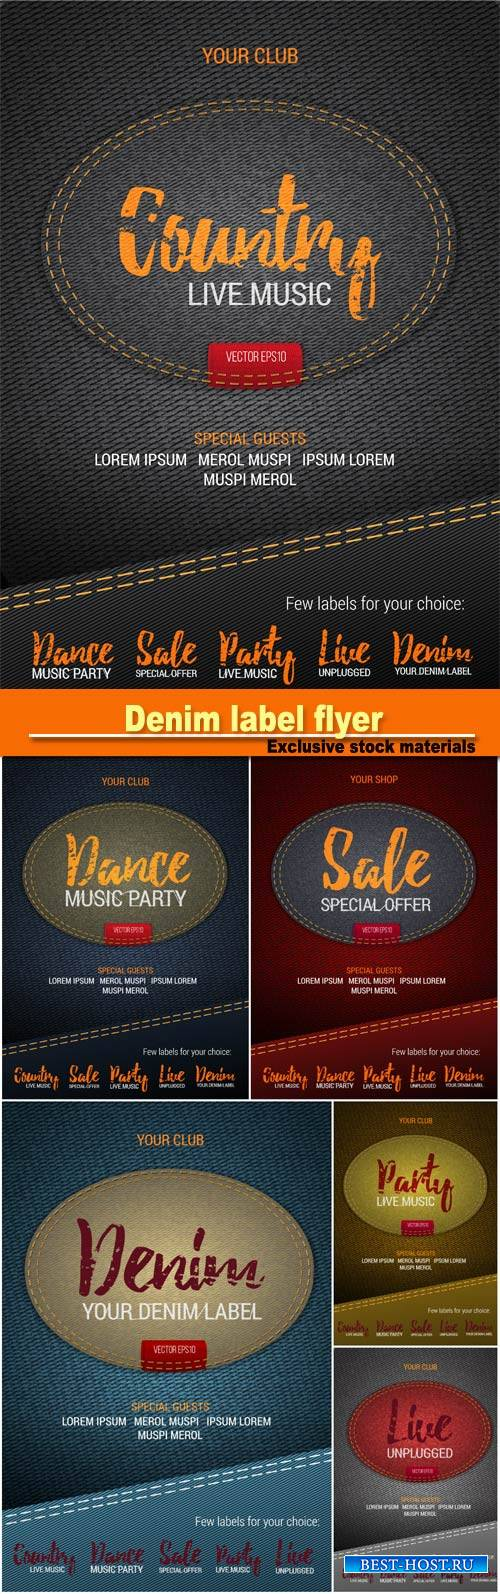 Denim label flyer or banner with denim background, denim label